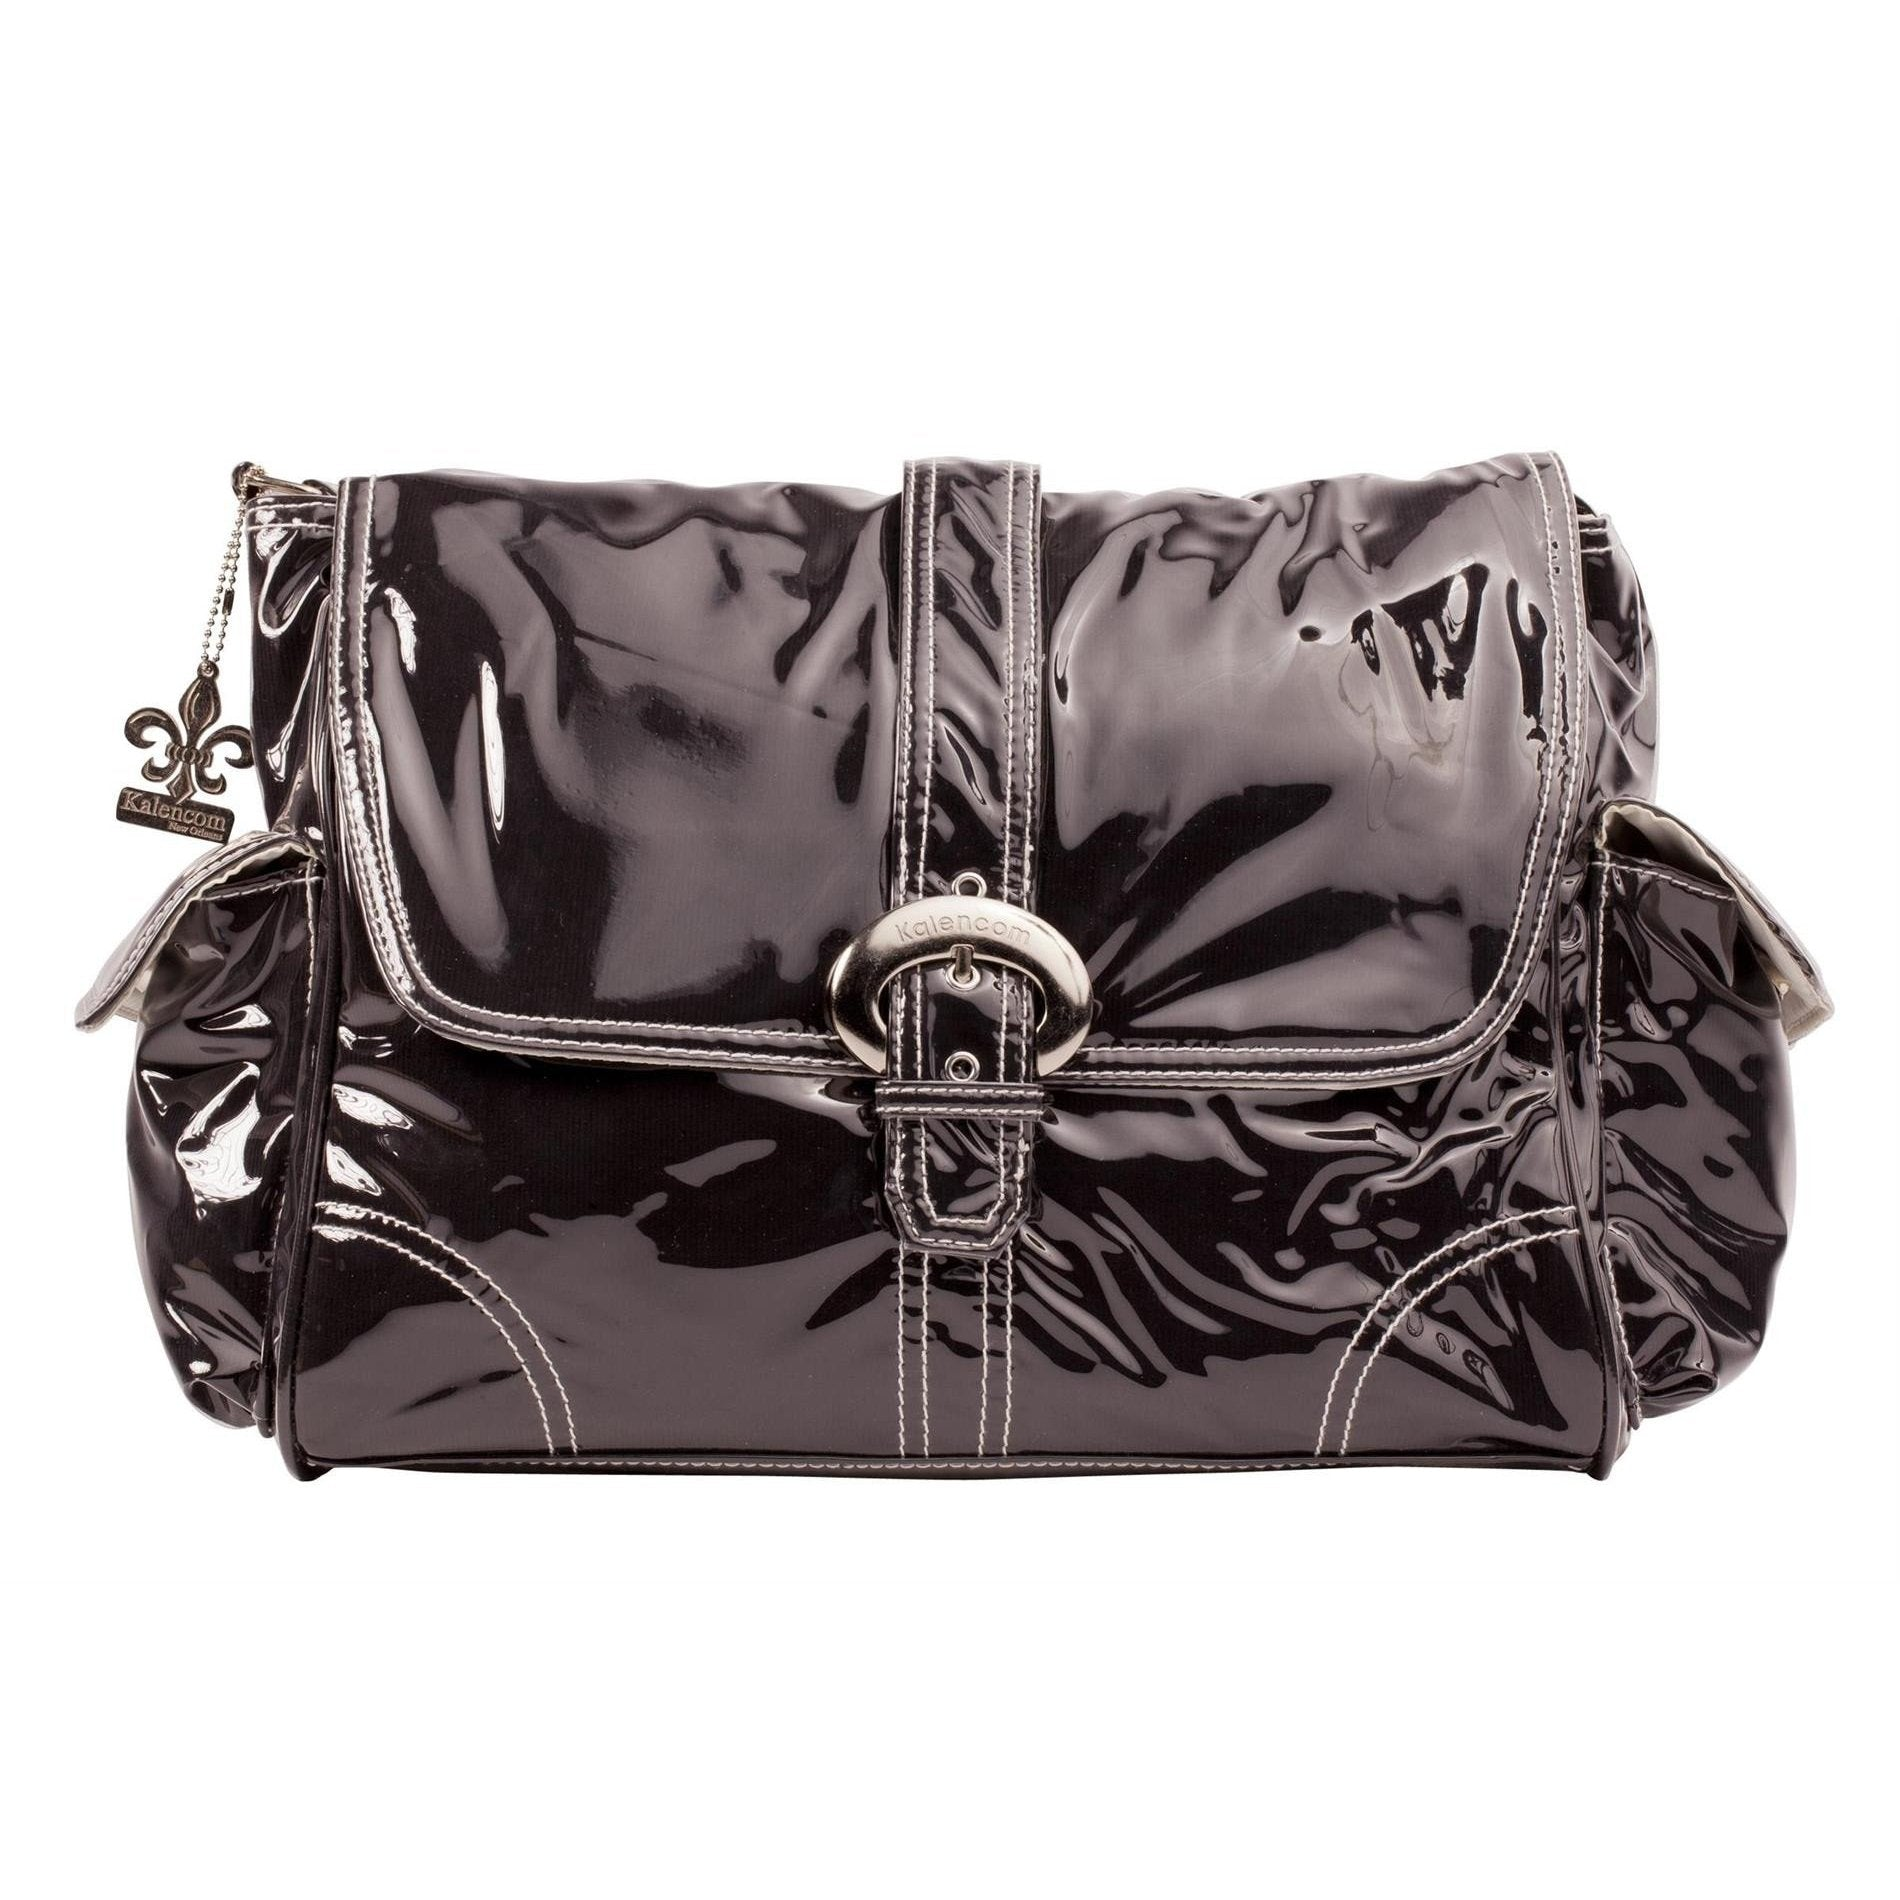 Black Corduroy Laminated Buckle Diaper Bag | Style 2960 - Kalencom-Diaper Bags-Jack and Jill Boutique